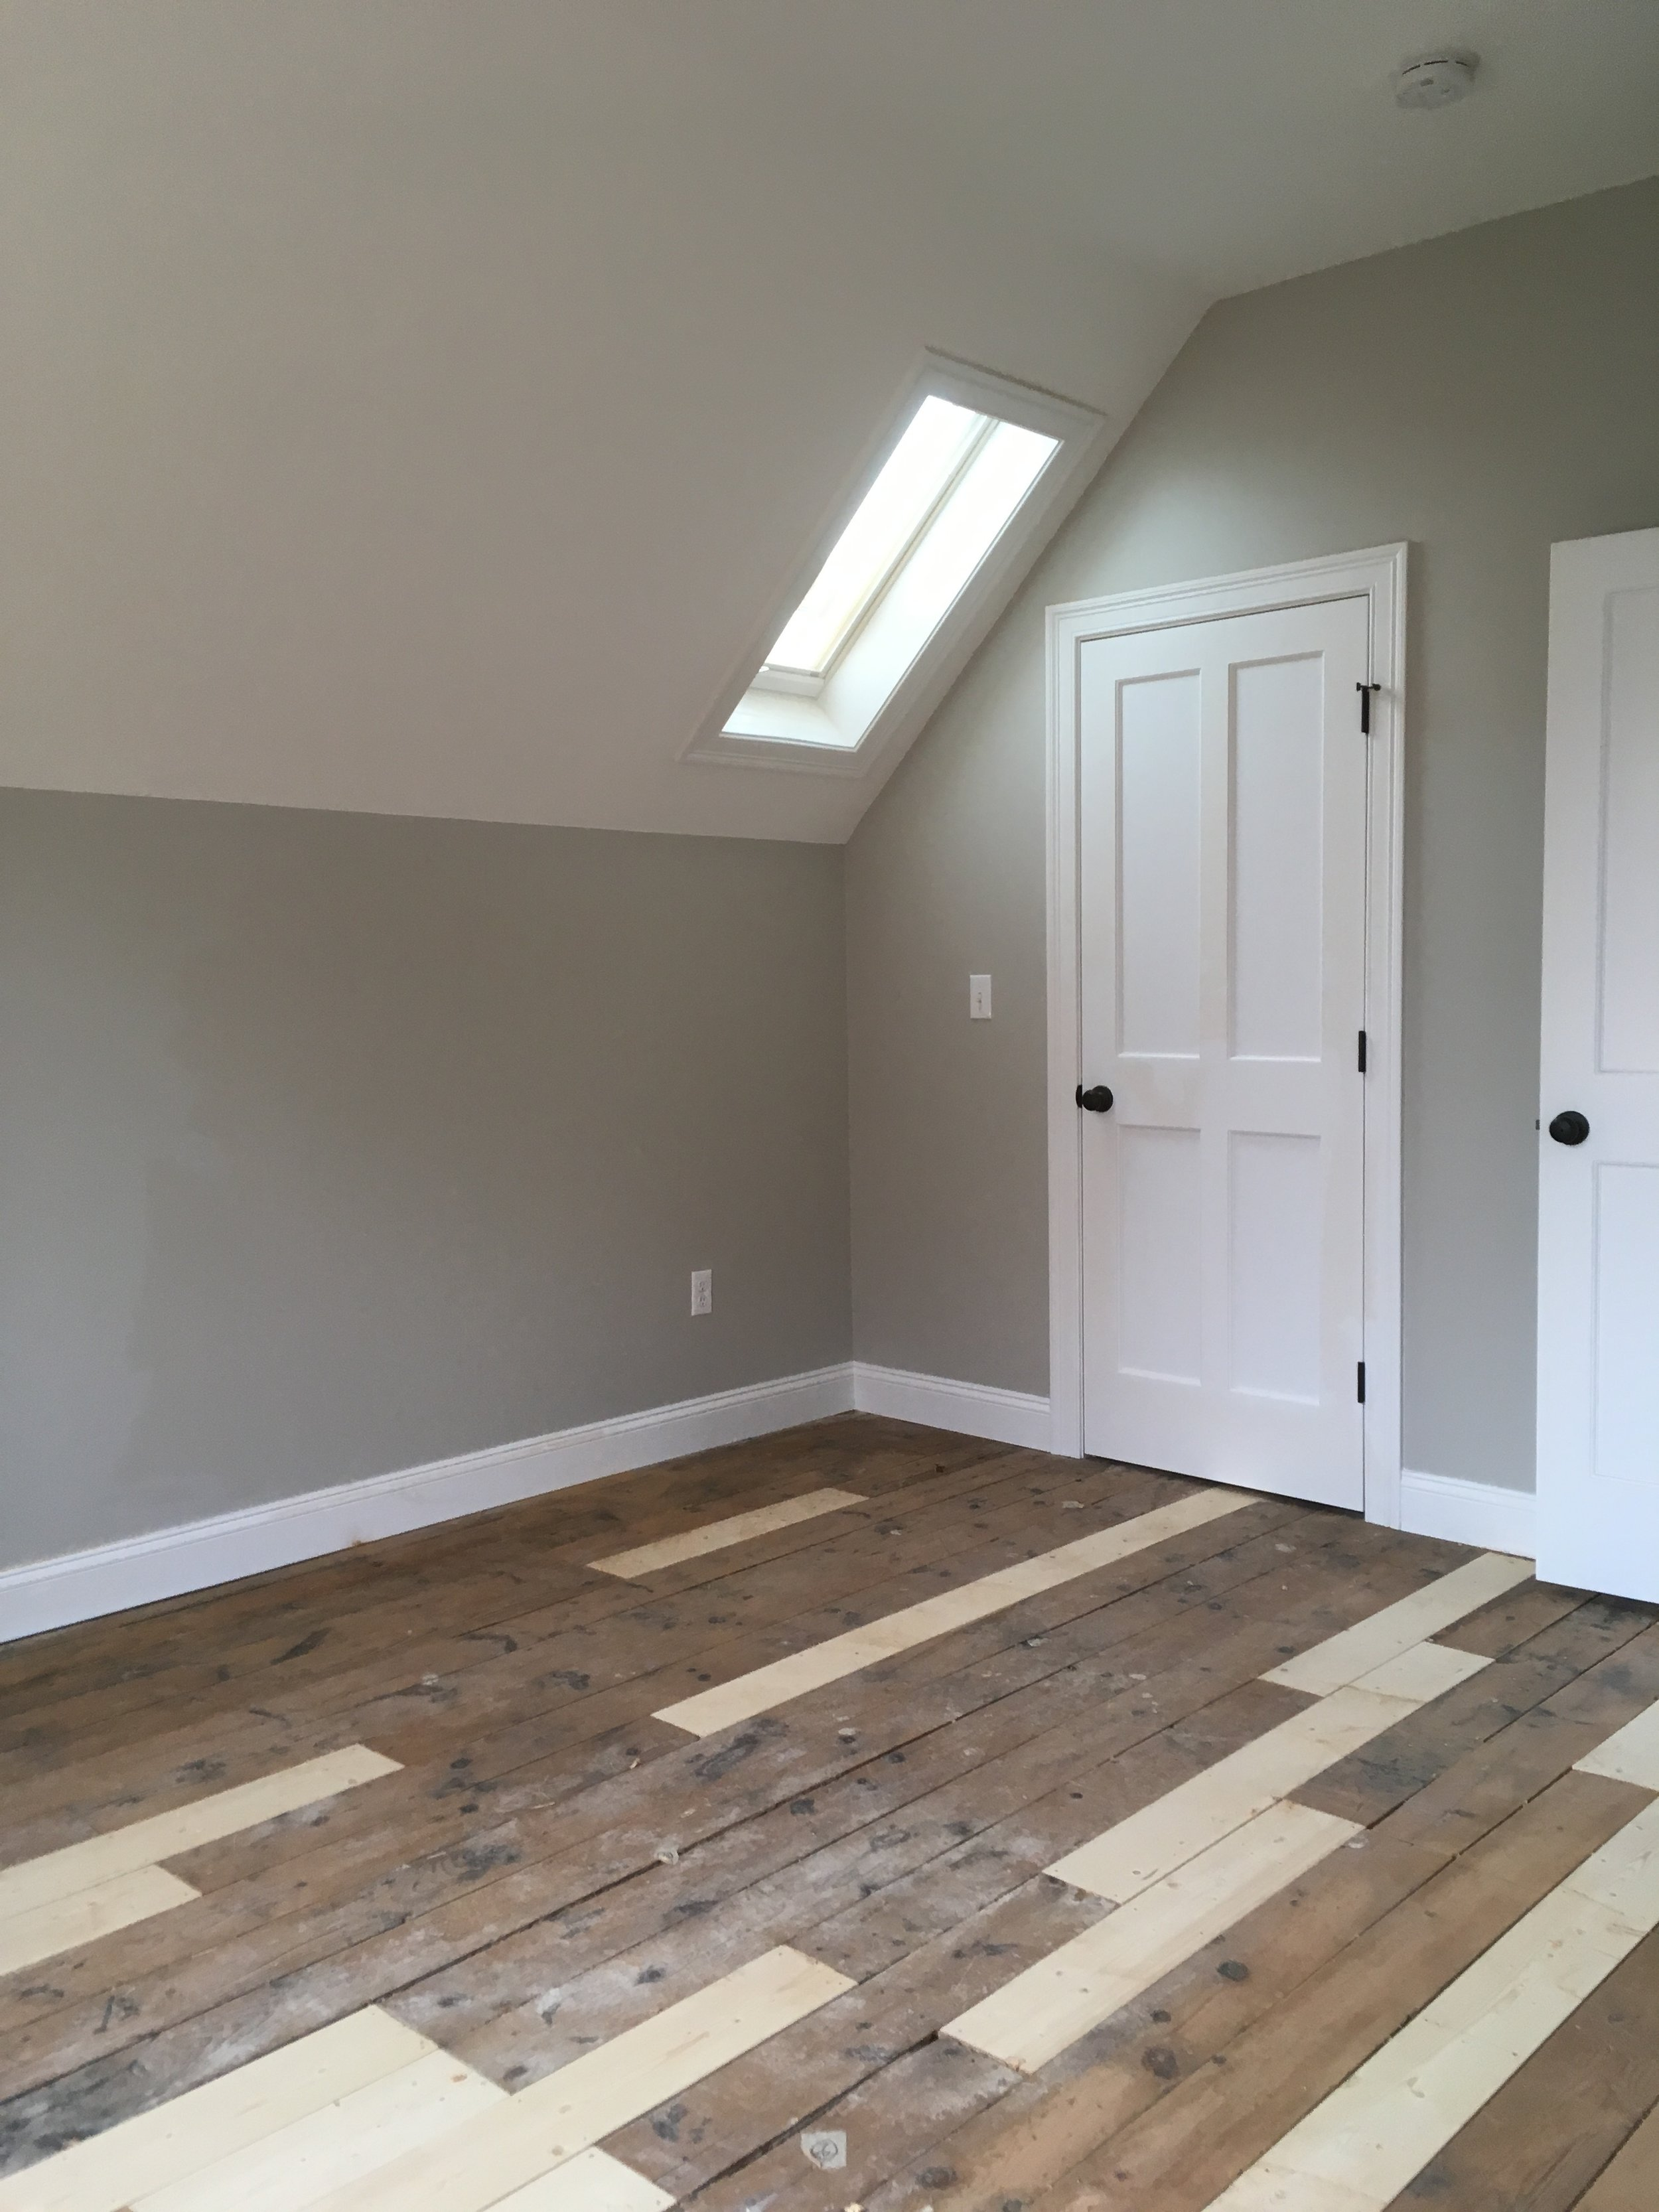 Original floor boards integrated with fresh white pine.